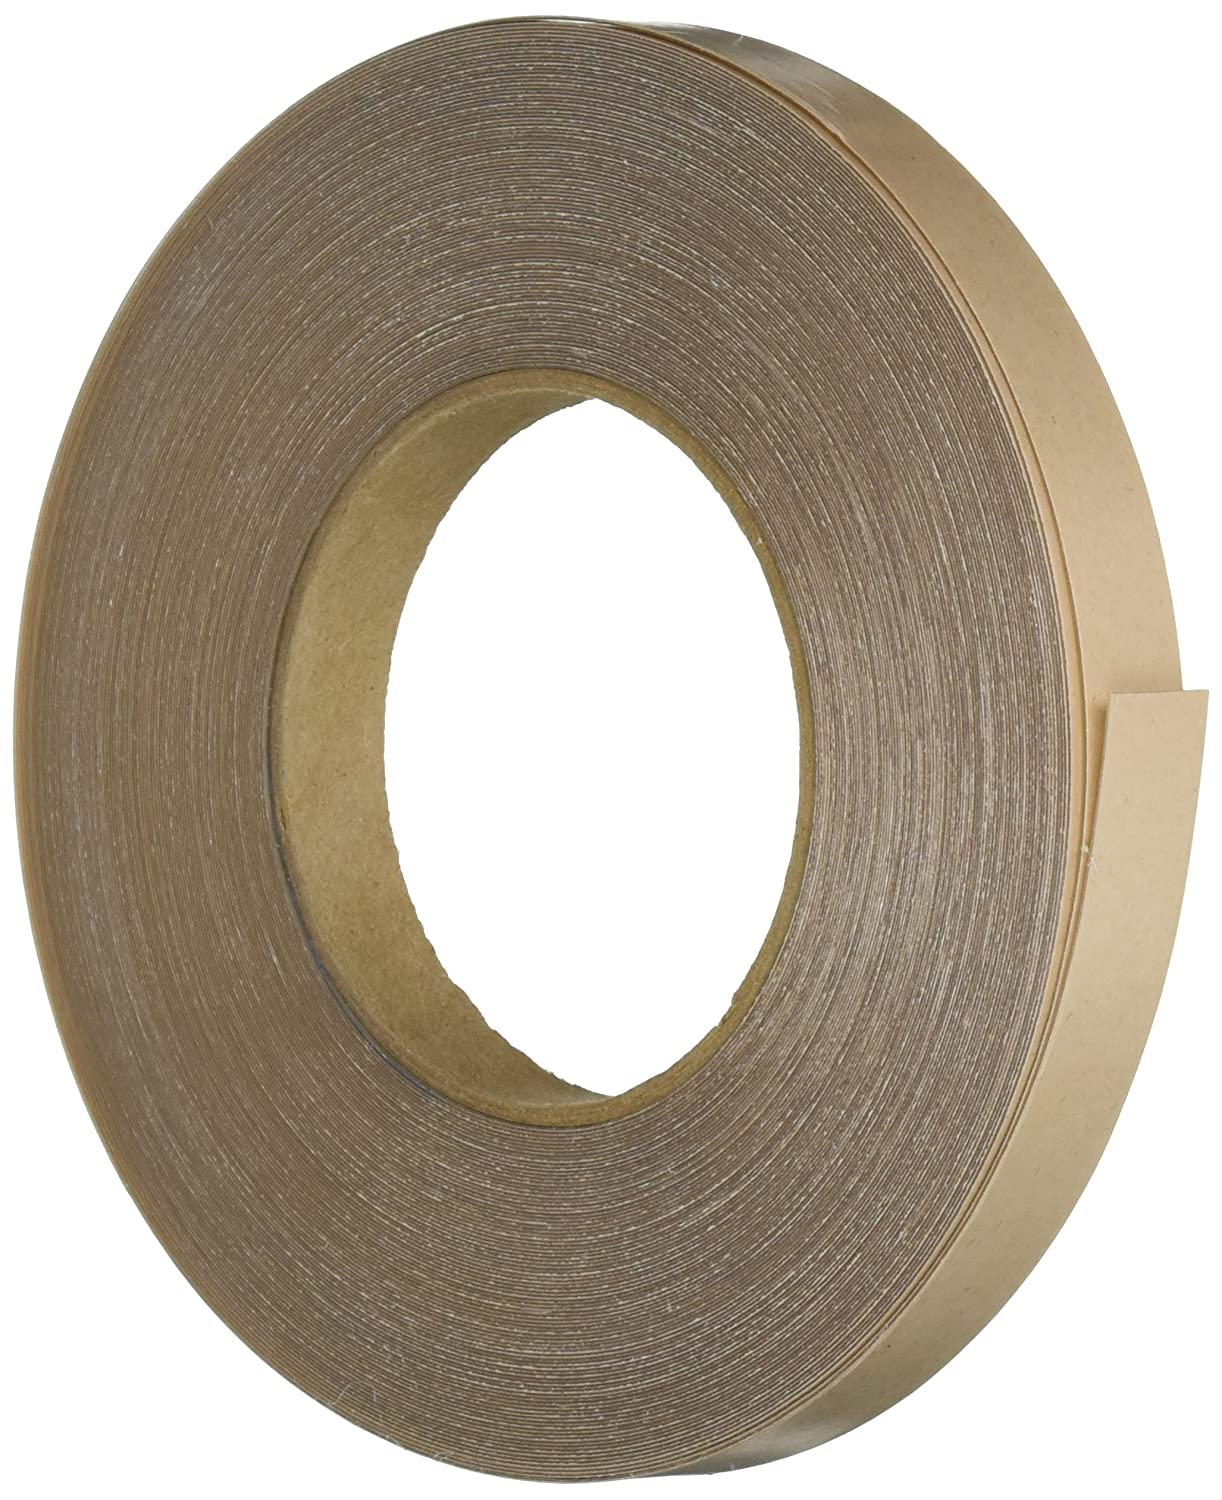 CS Hyde 19-5R UHMW .005 Mil Tape with Rubber Adhesive.625 x 36 Yards